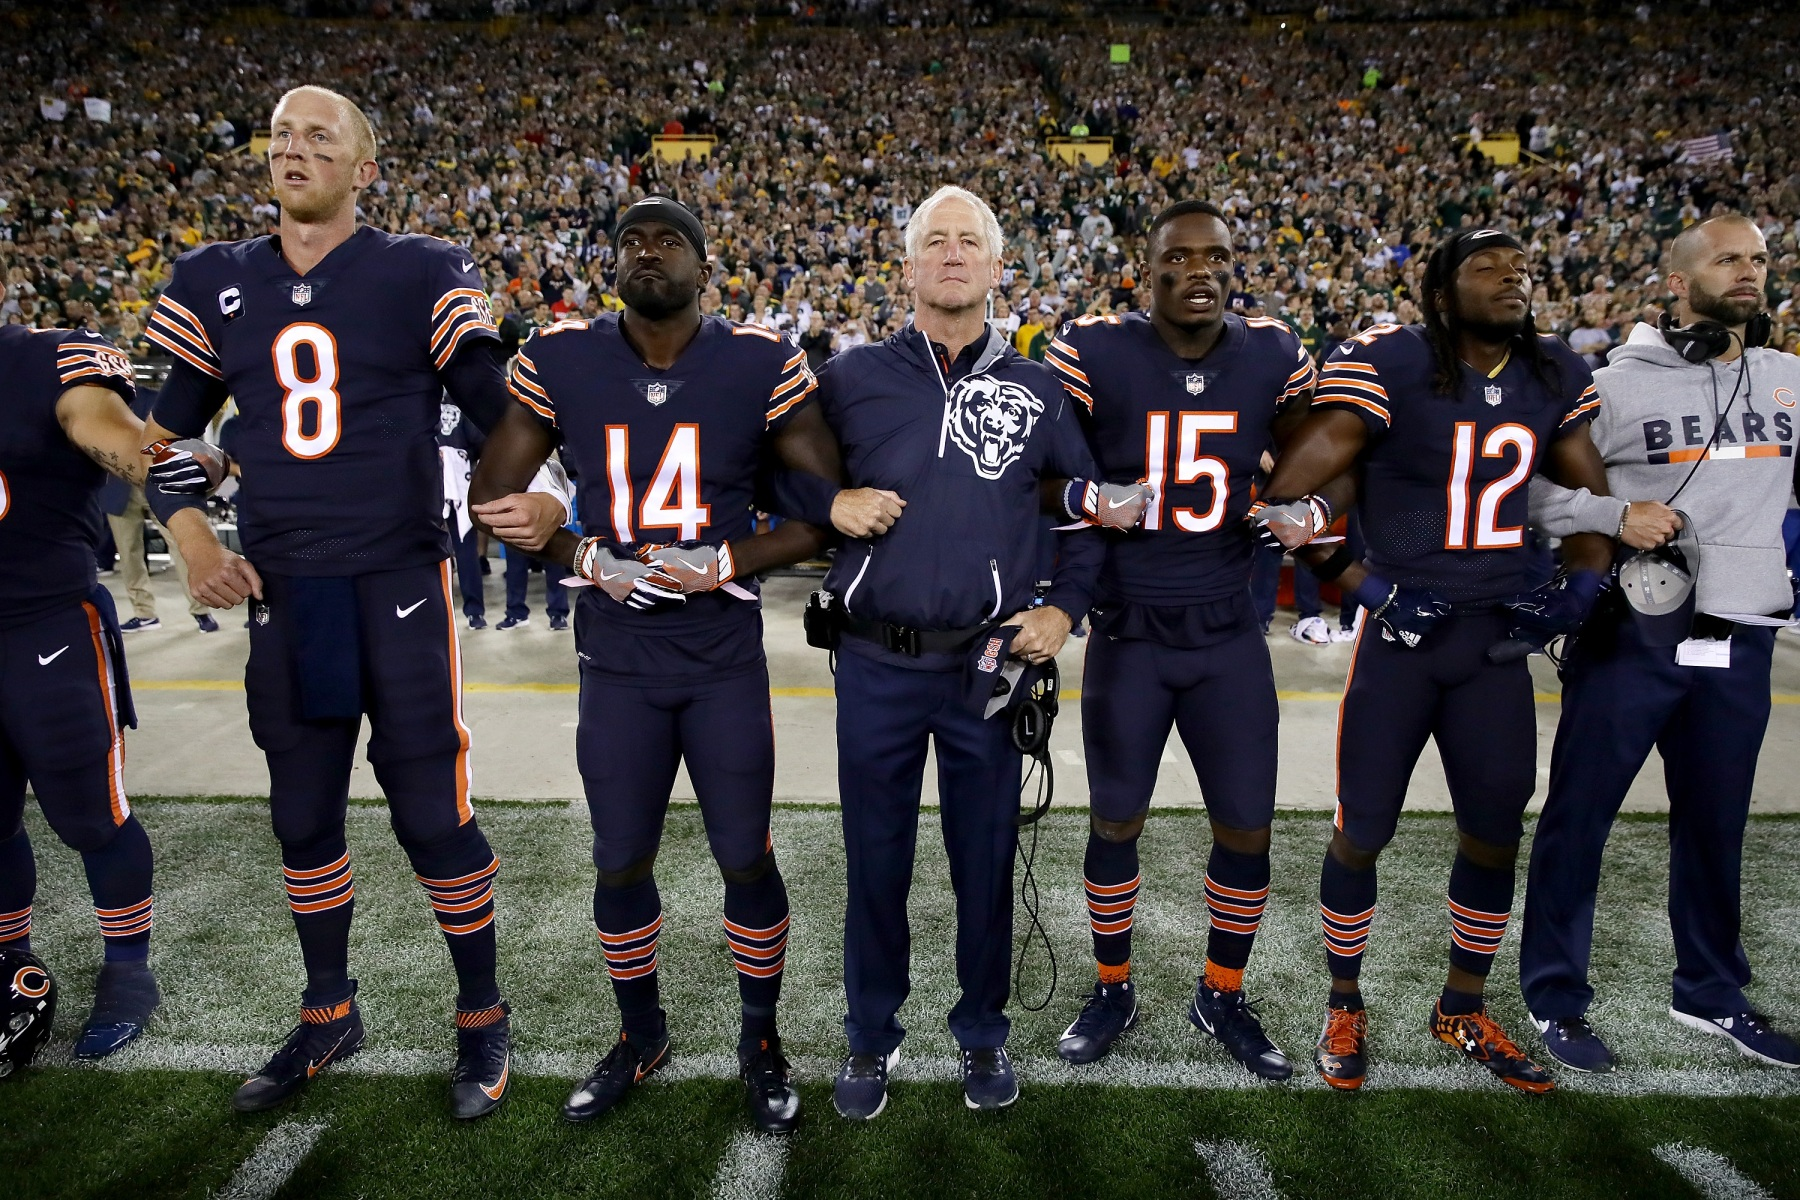 Head coach John Fox of the Chicago Bears links arms with players during the singing of the national anthem before the game against the Green Bay Packers at Lambeau Field on September 28, 2017 in Green Bay, Wisconsin. (Jonathan Daniel/Getty Images)